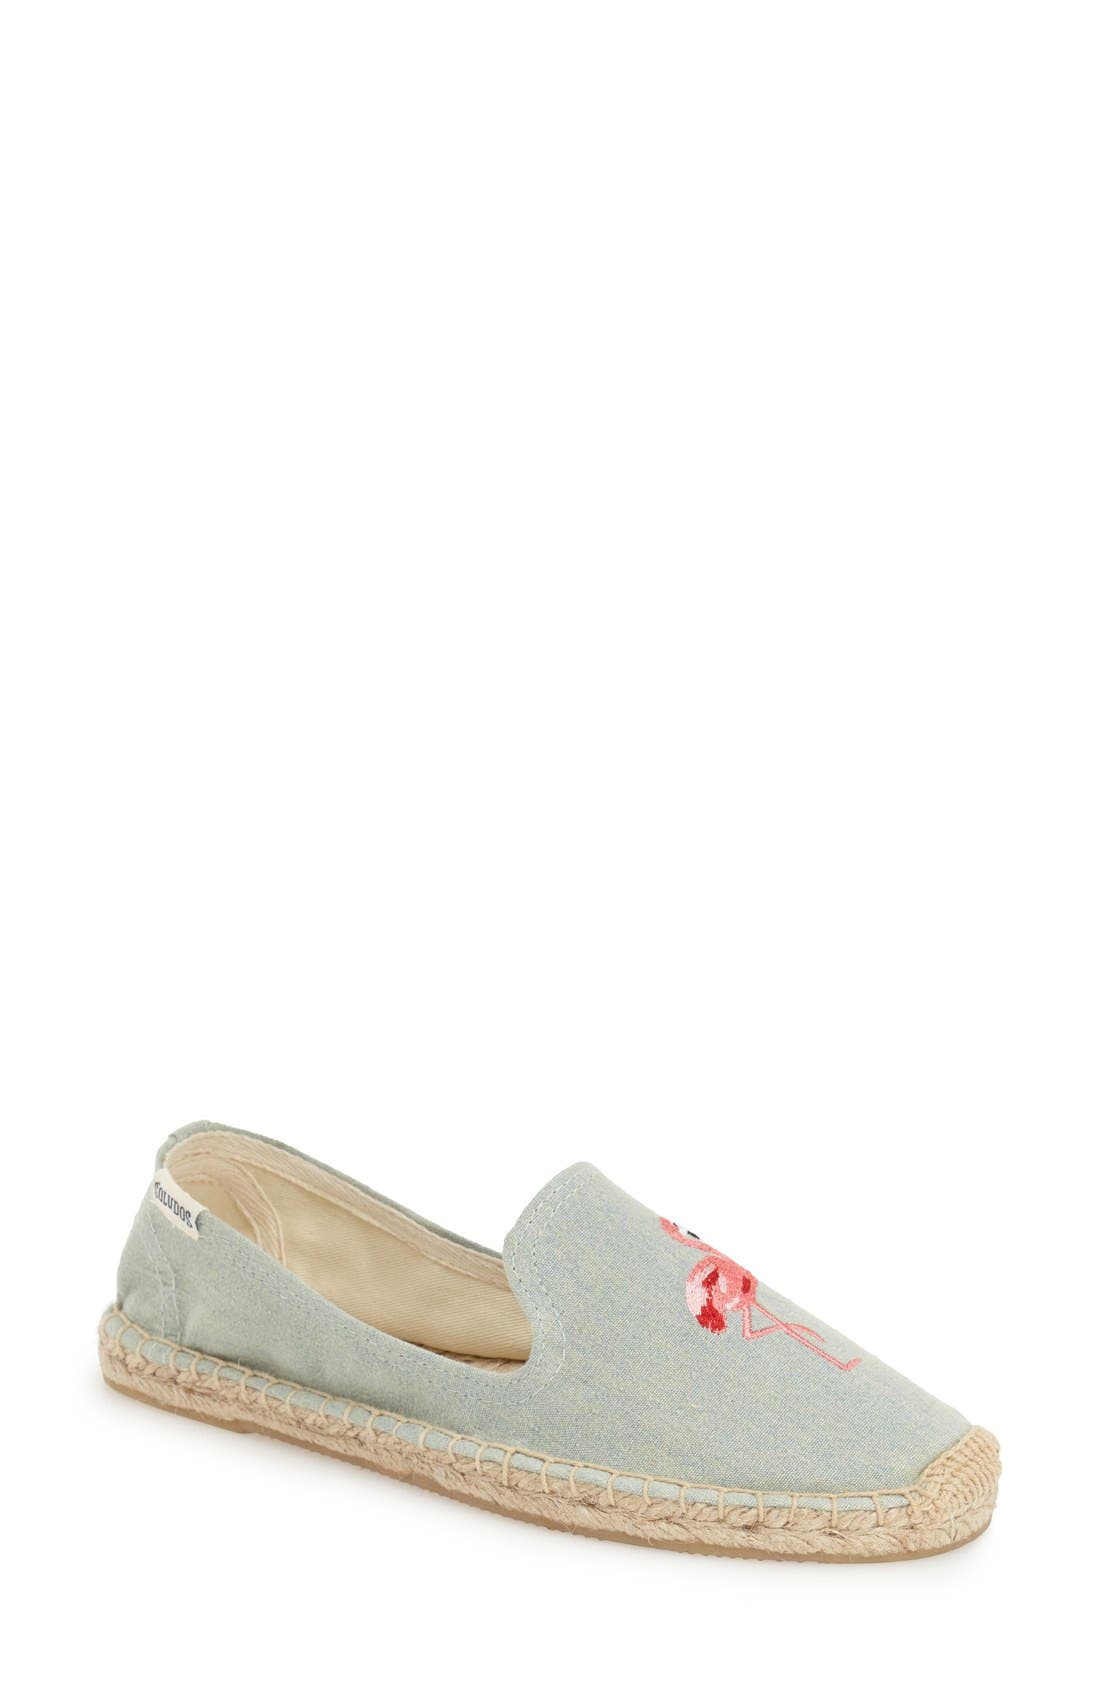 SOLUDOS, Espadrille Slip-On, Alternate thumbnail 3, color, FLAMINGO CHAMBRAY